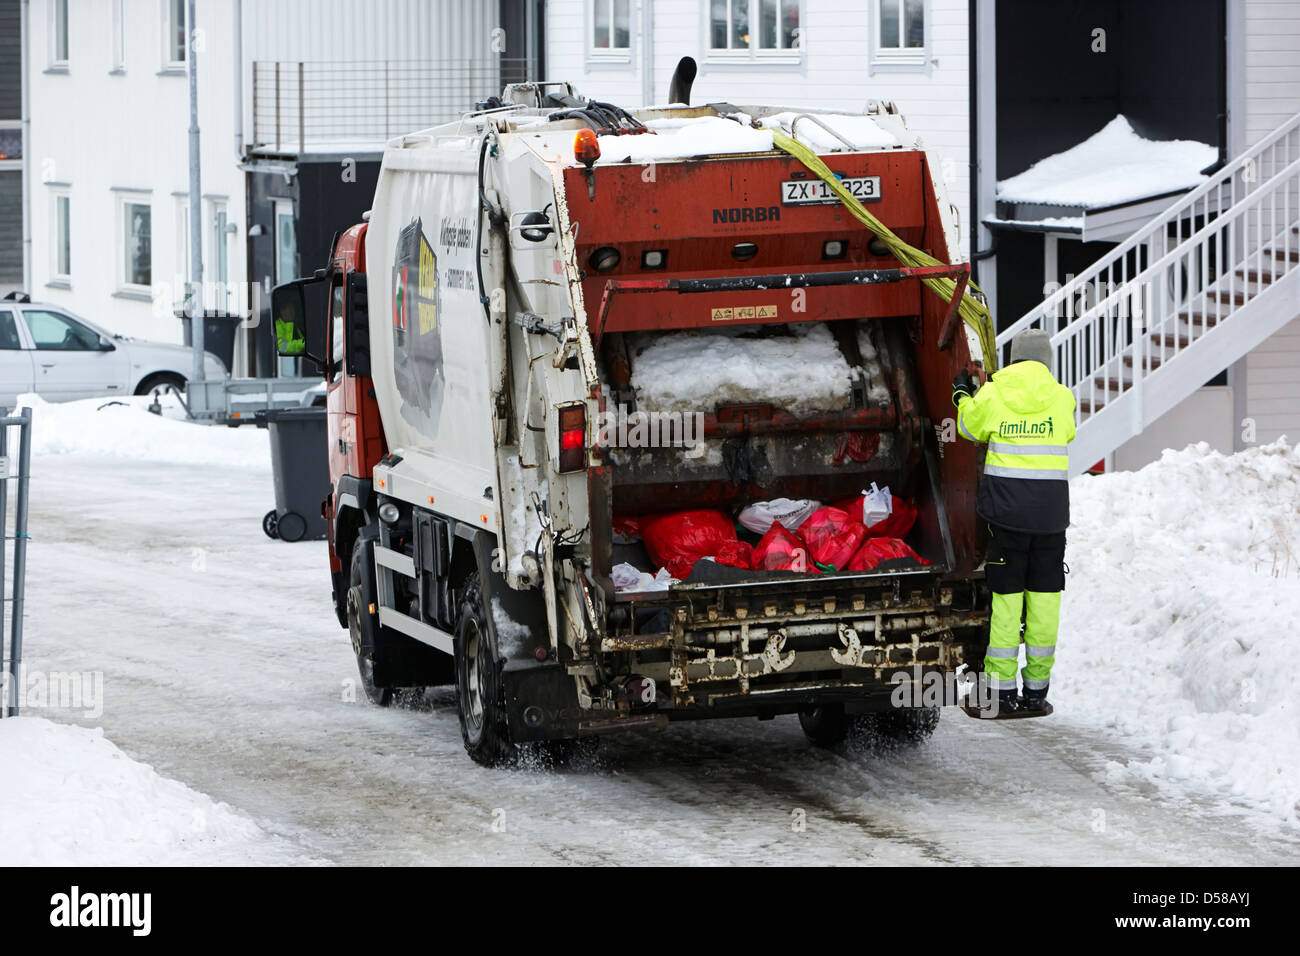 bin refuse collection rounds in winter Honningsvag finnmark norway europe - Stock Image